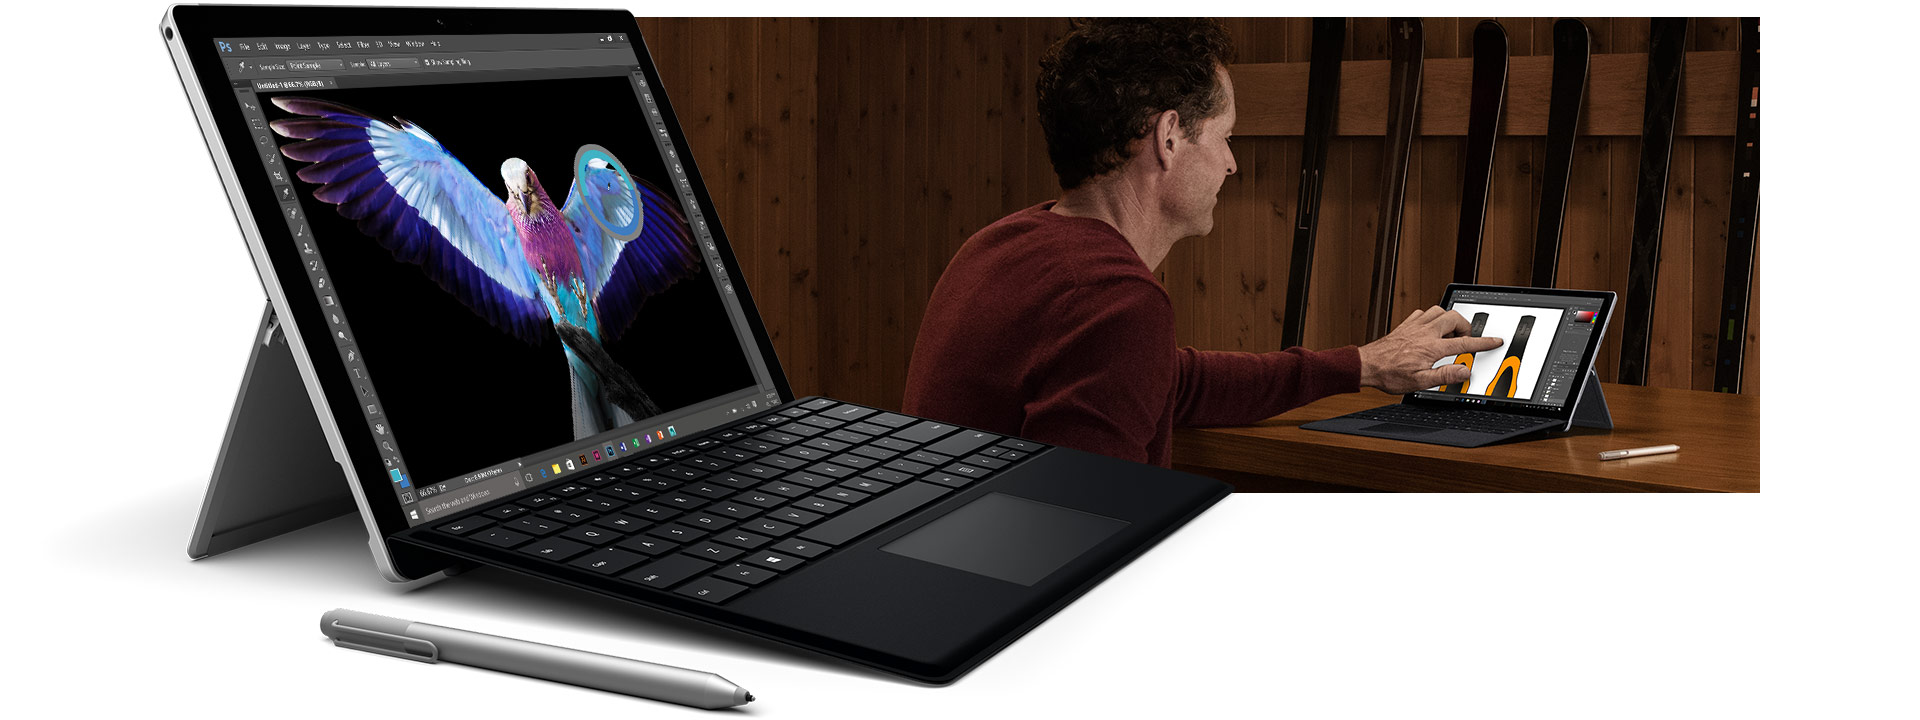 Surface Pro 4 device with Surface Pen